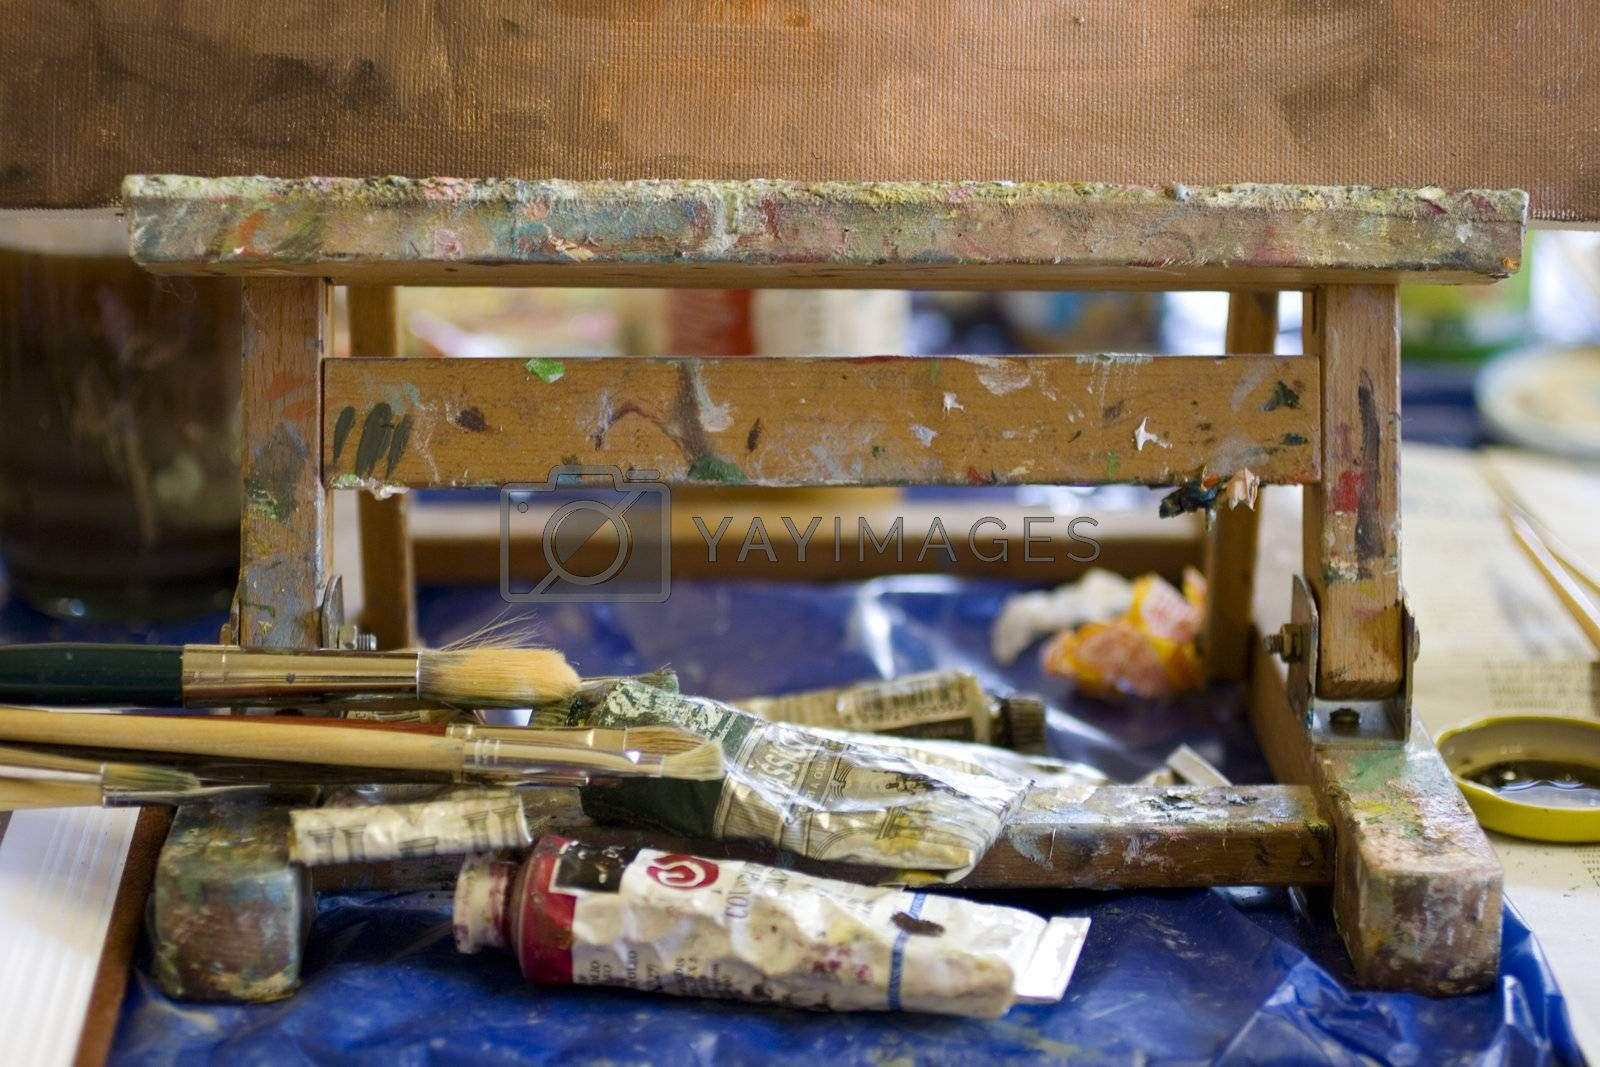 Atelier. Palette with colors, easel in the background